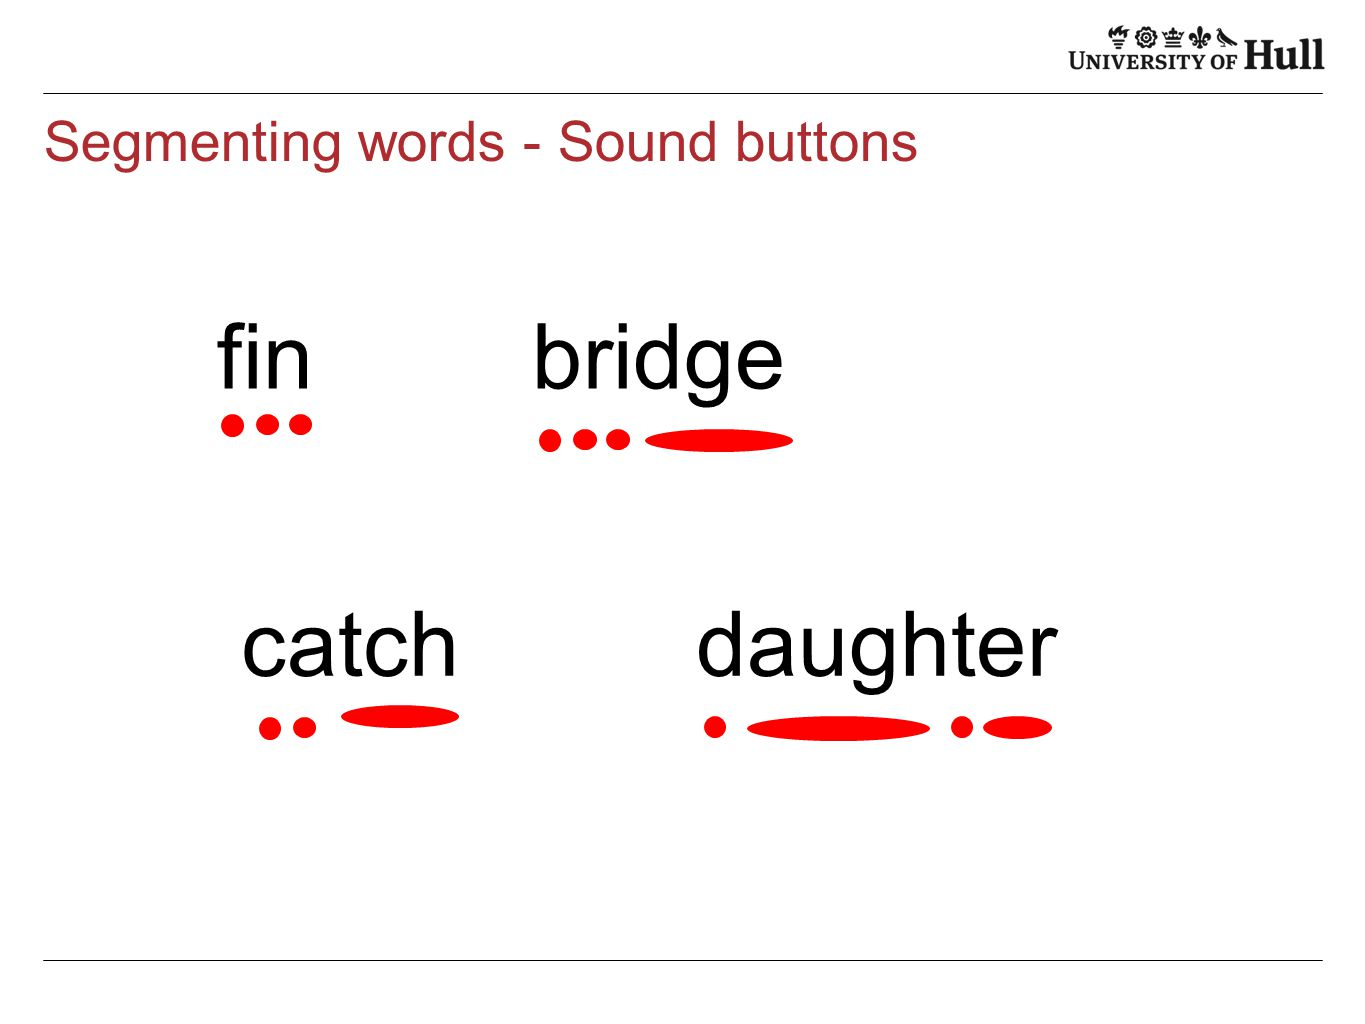 Segmenting words - Sound buttons